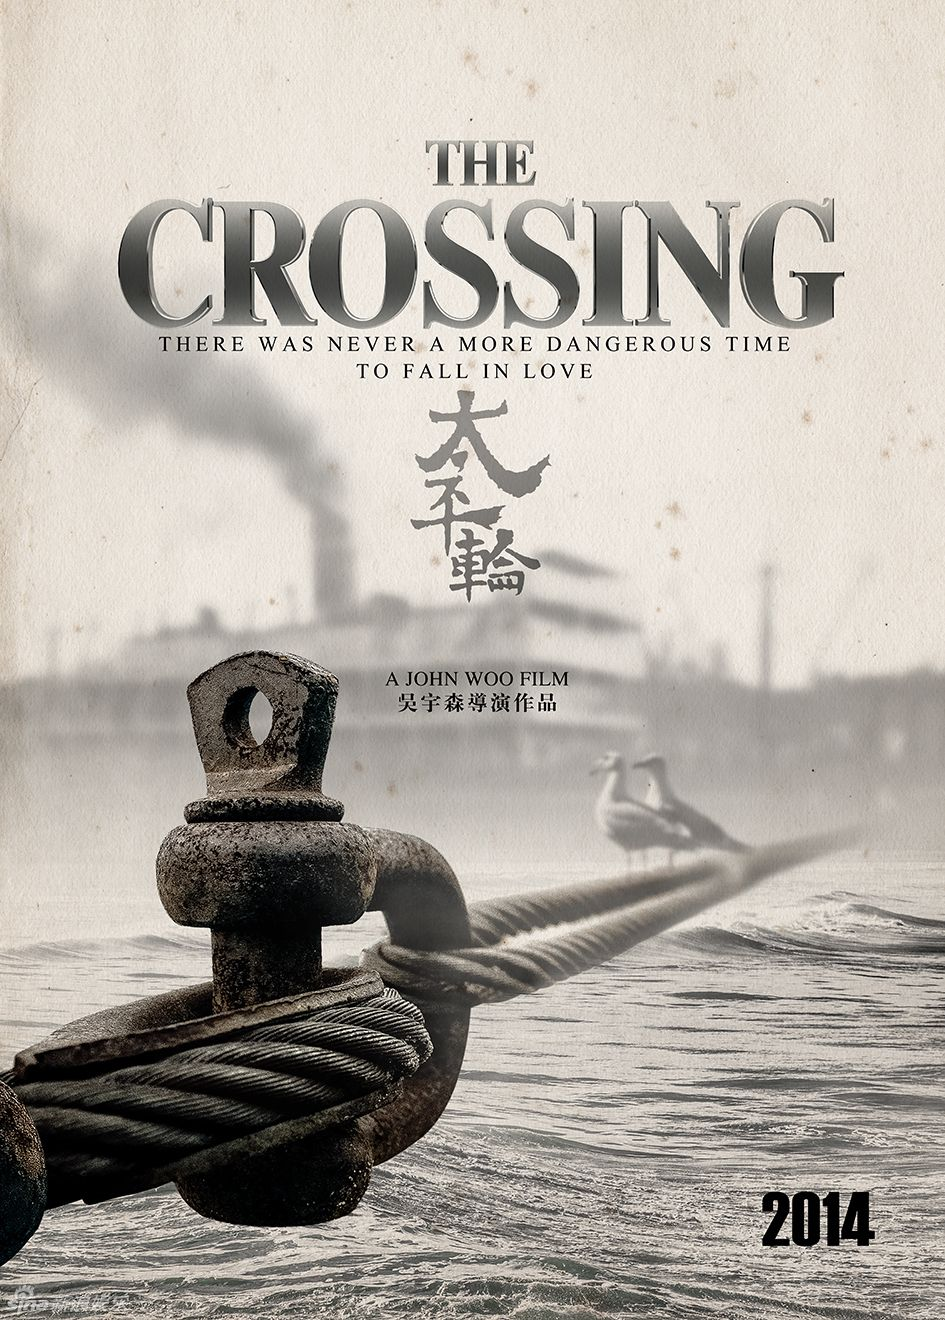 太平輪 The Crossing John woo, Film, Film 2014